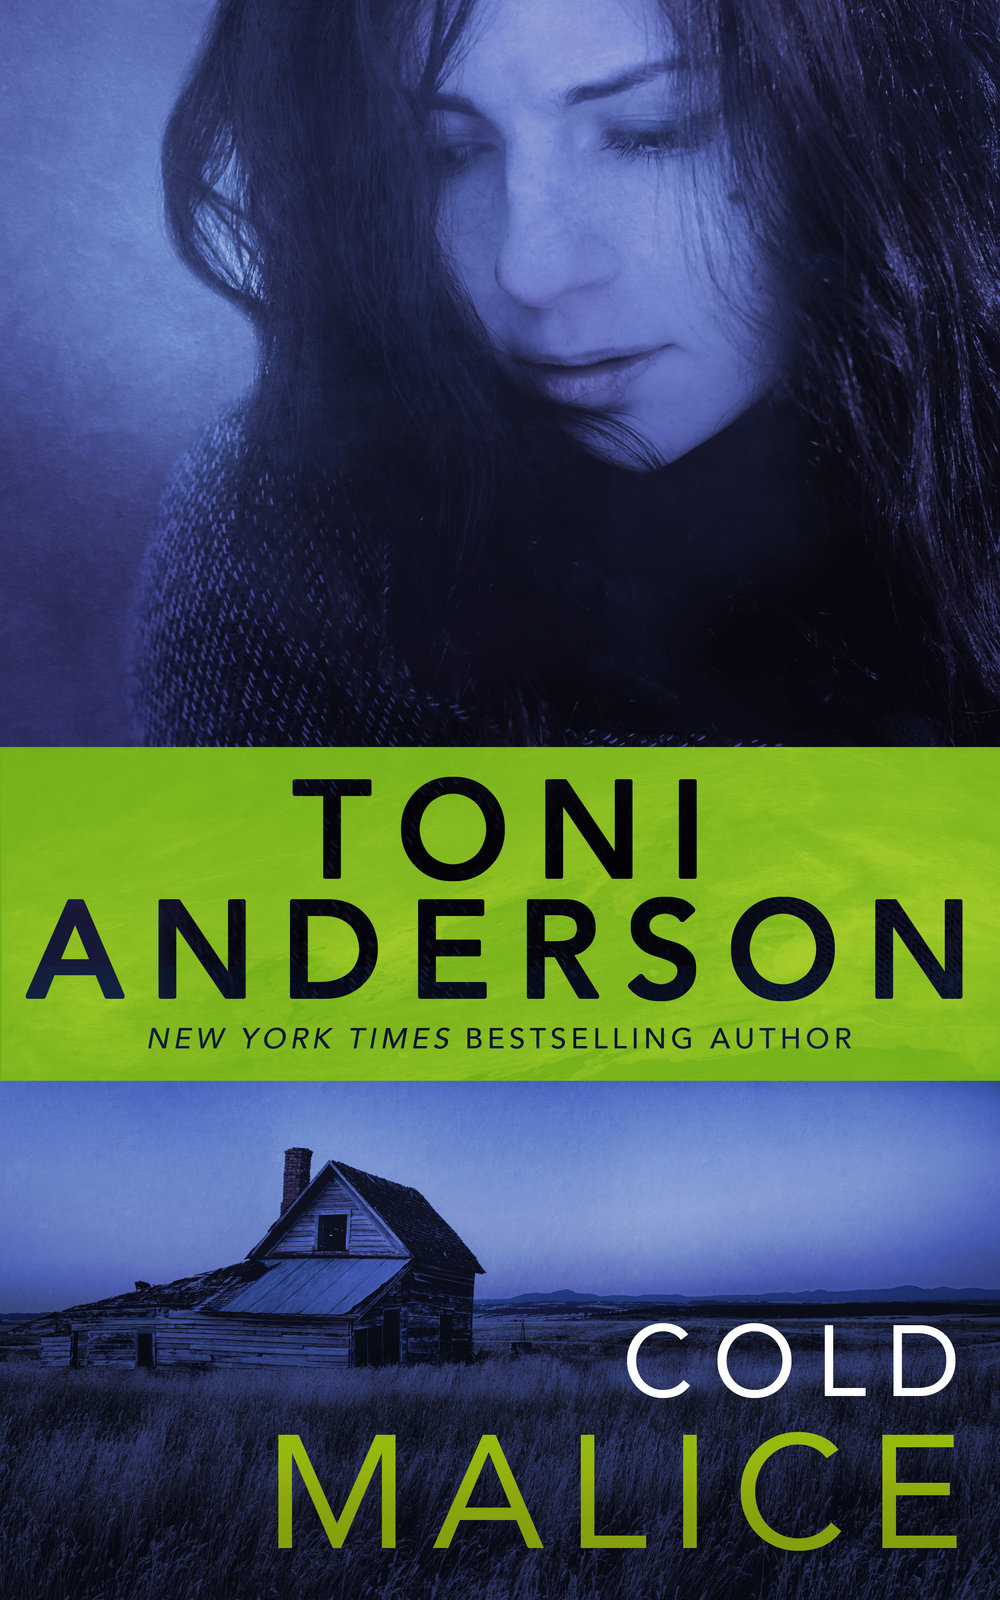 ColdMalice_ToniAnderson-ebook-FINAL-KOBO.jpg